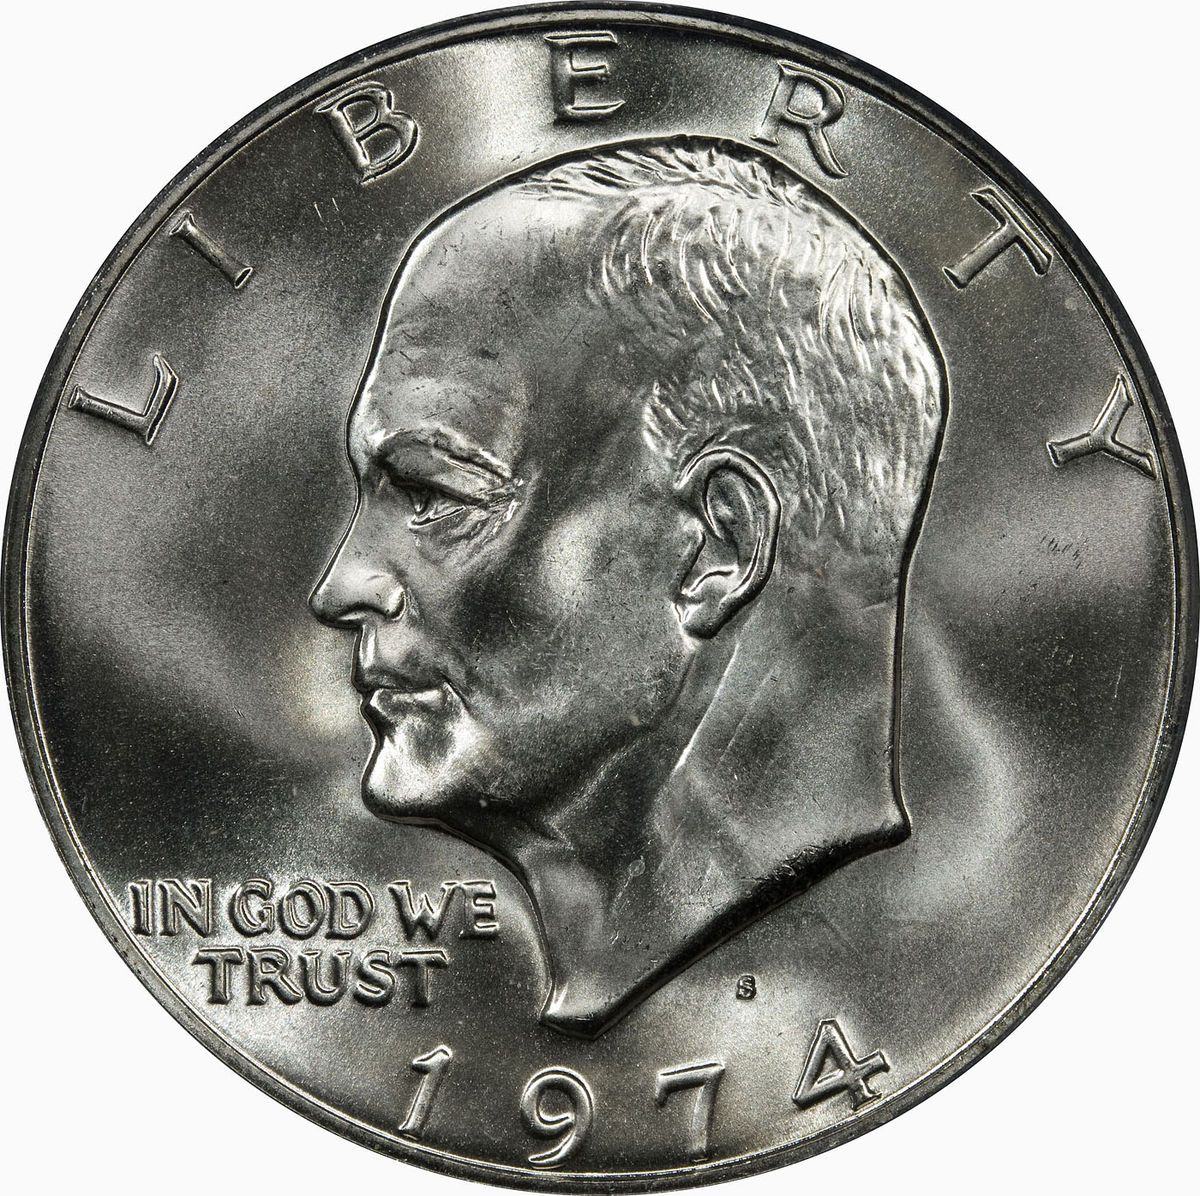 Eisenhower dollar - Wikipedia